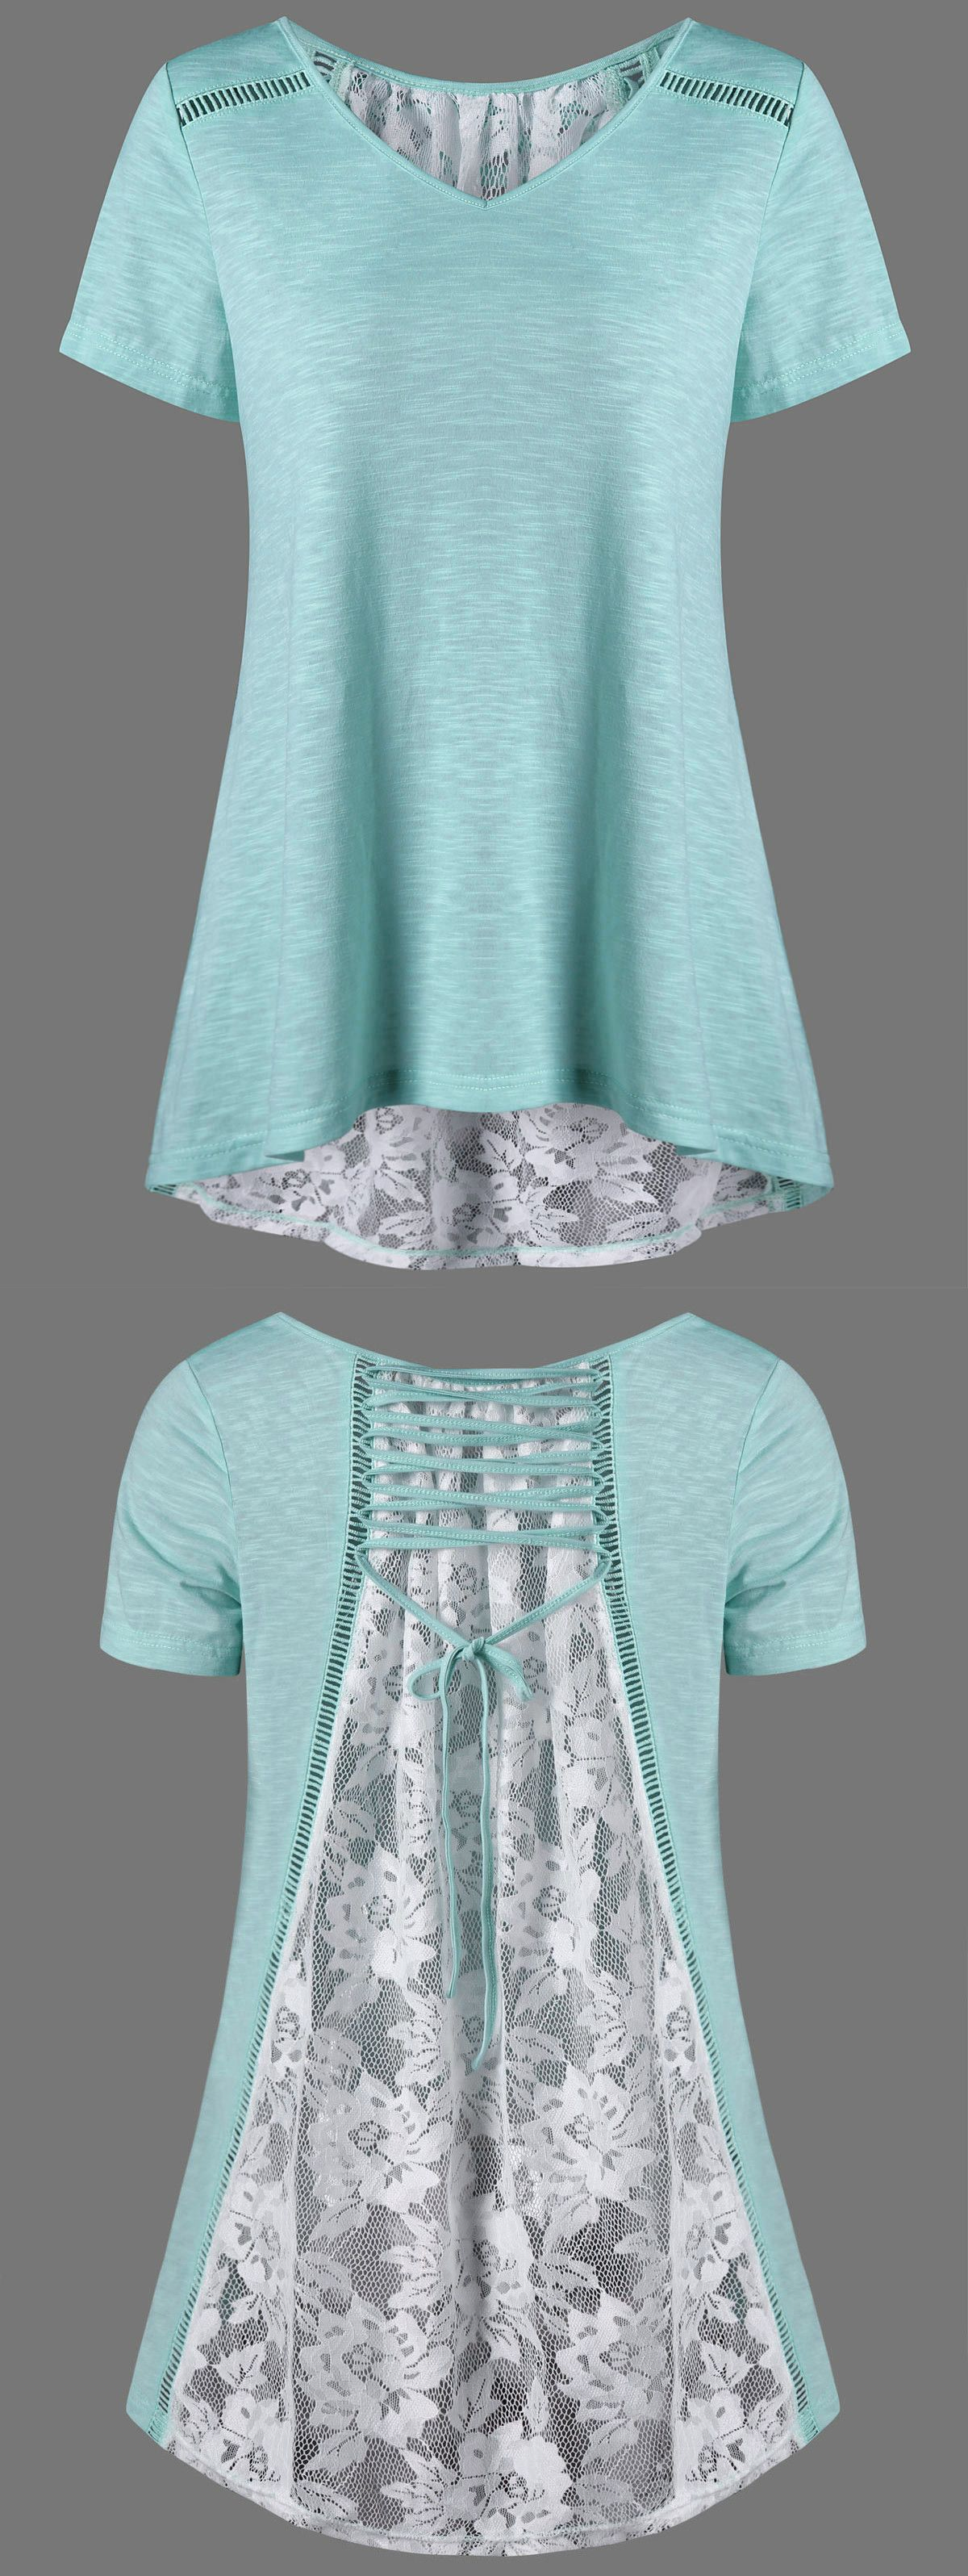 $14.19 Floral High Low Hem Lace Up T-Shirt - White And Green | bluz ...